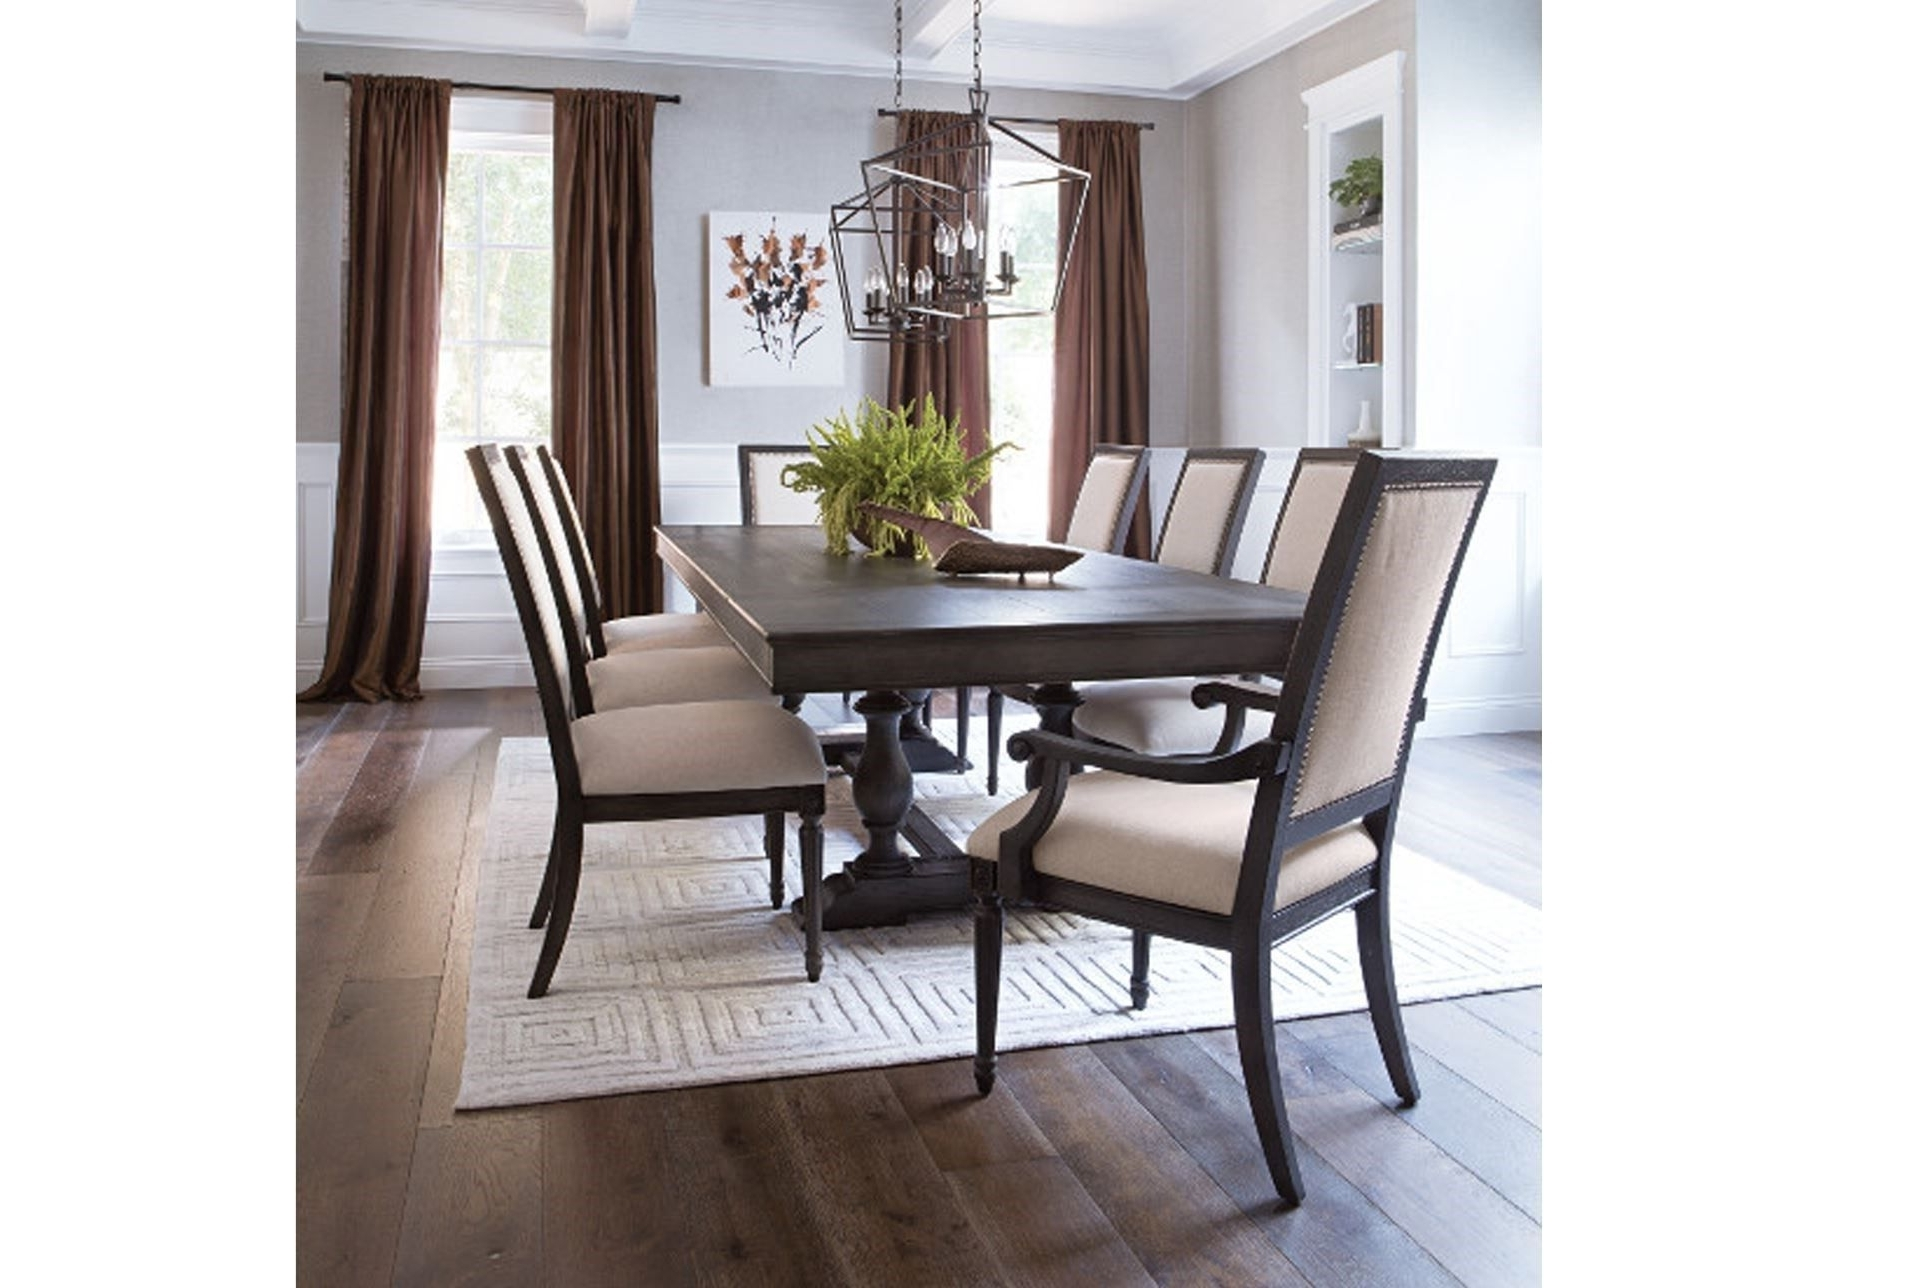 Pinterest Intended For Chapleau Ii 9 Piece Extension Dining Tables With Side Chairs (View 4 of 25)